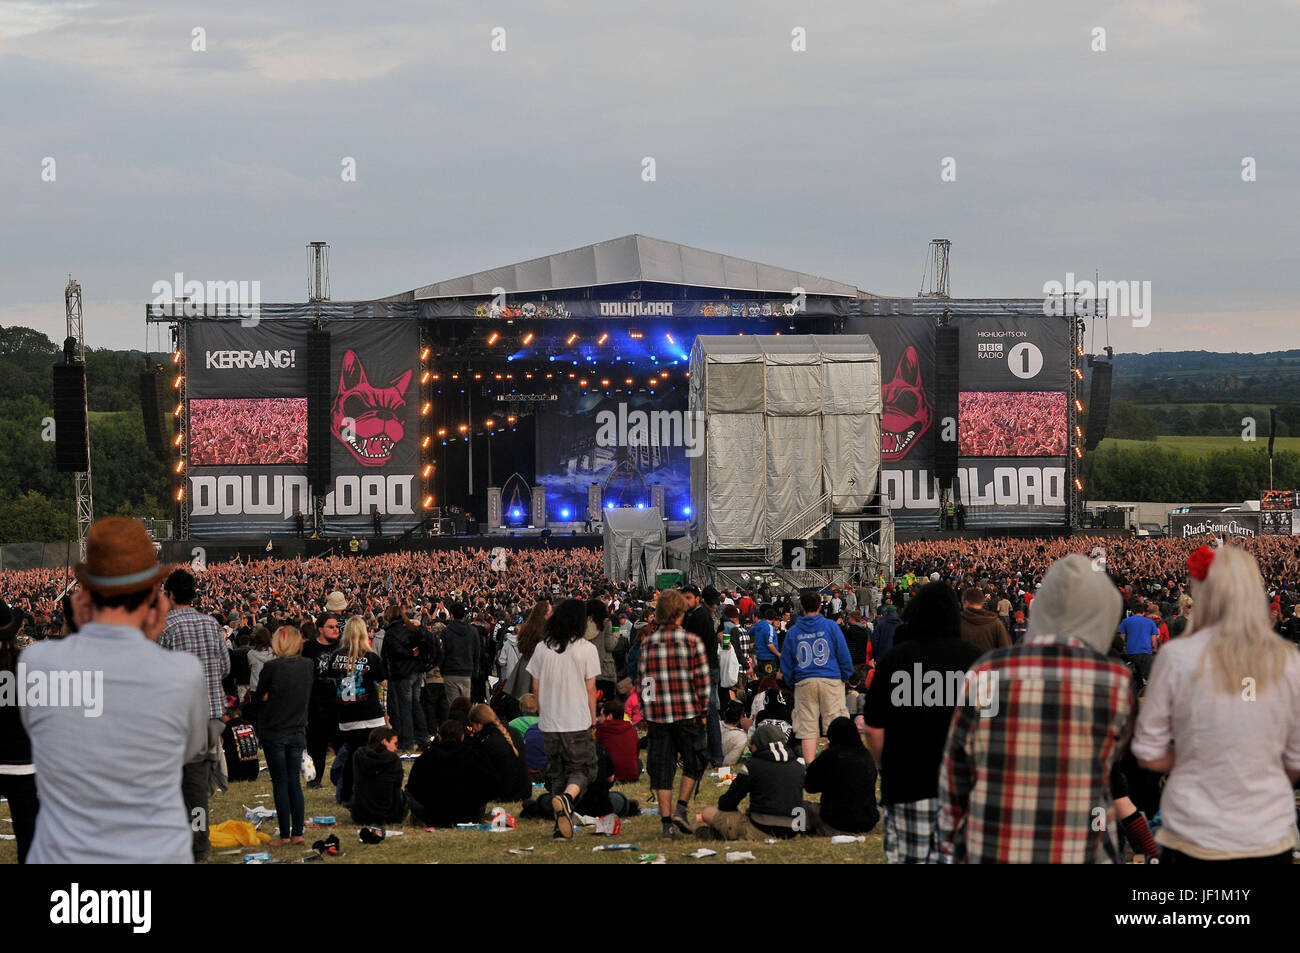 Download Festival - crowds and atmosphere in front of the